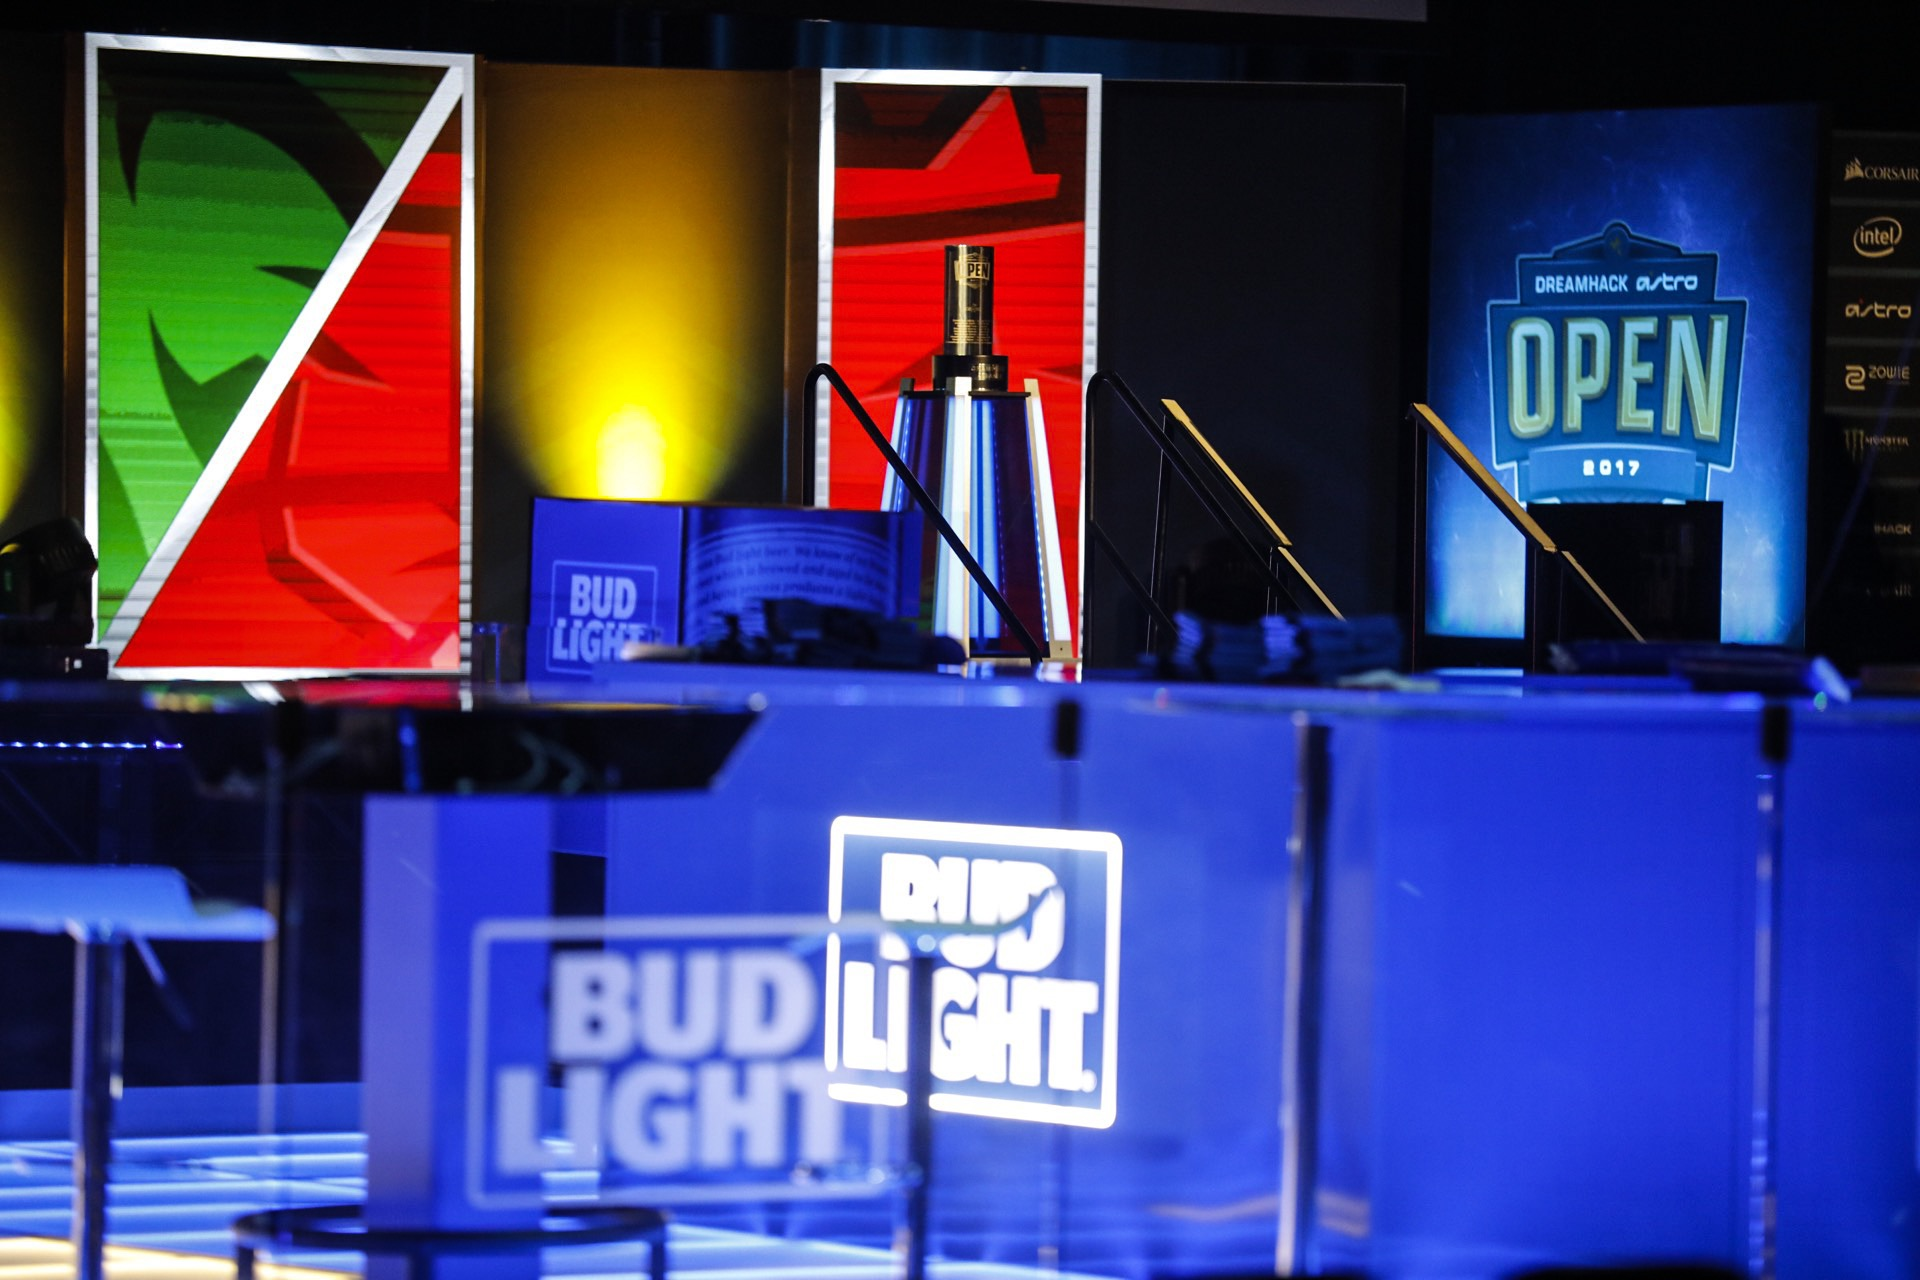 Bud Light at DreamHack (Photo: Bud Light)